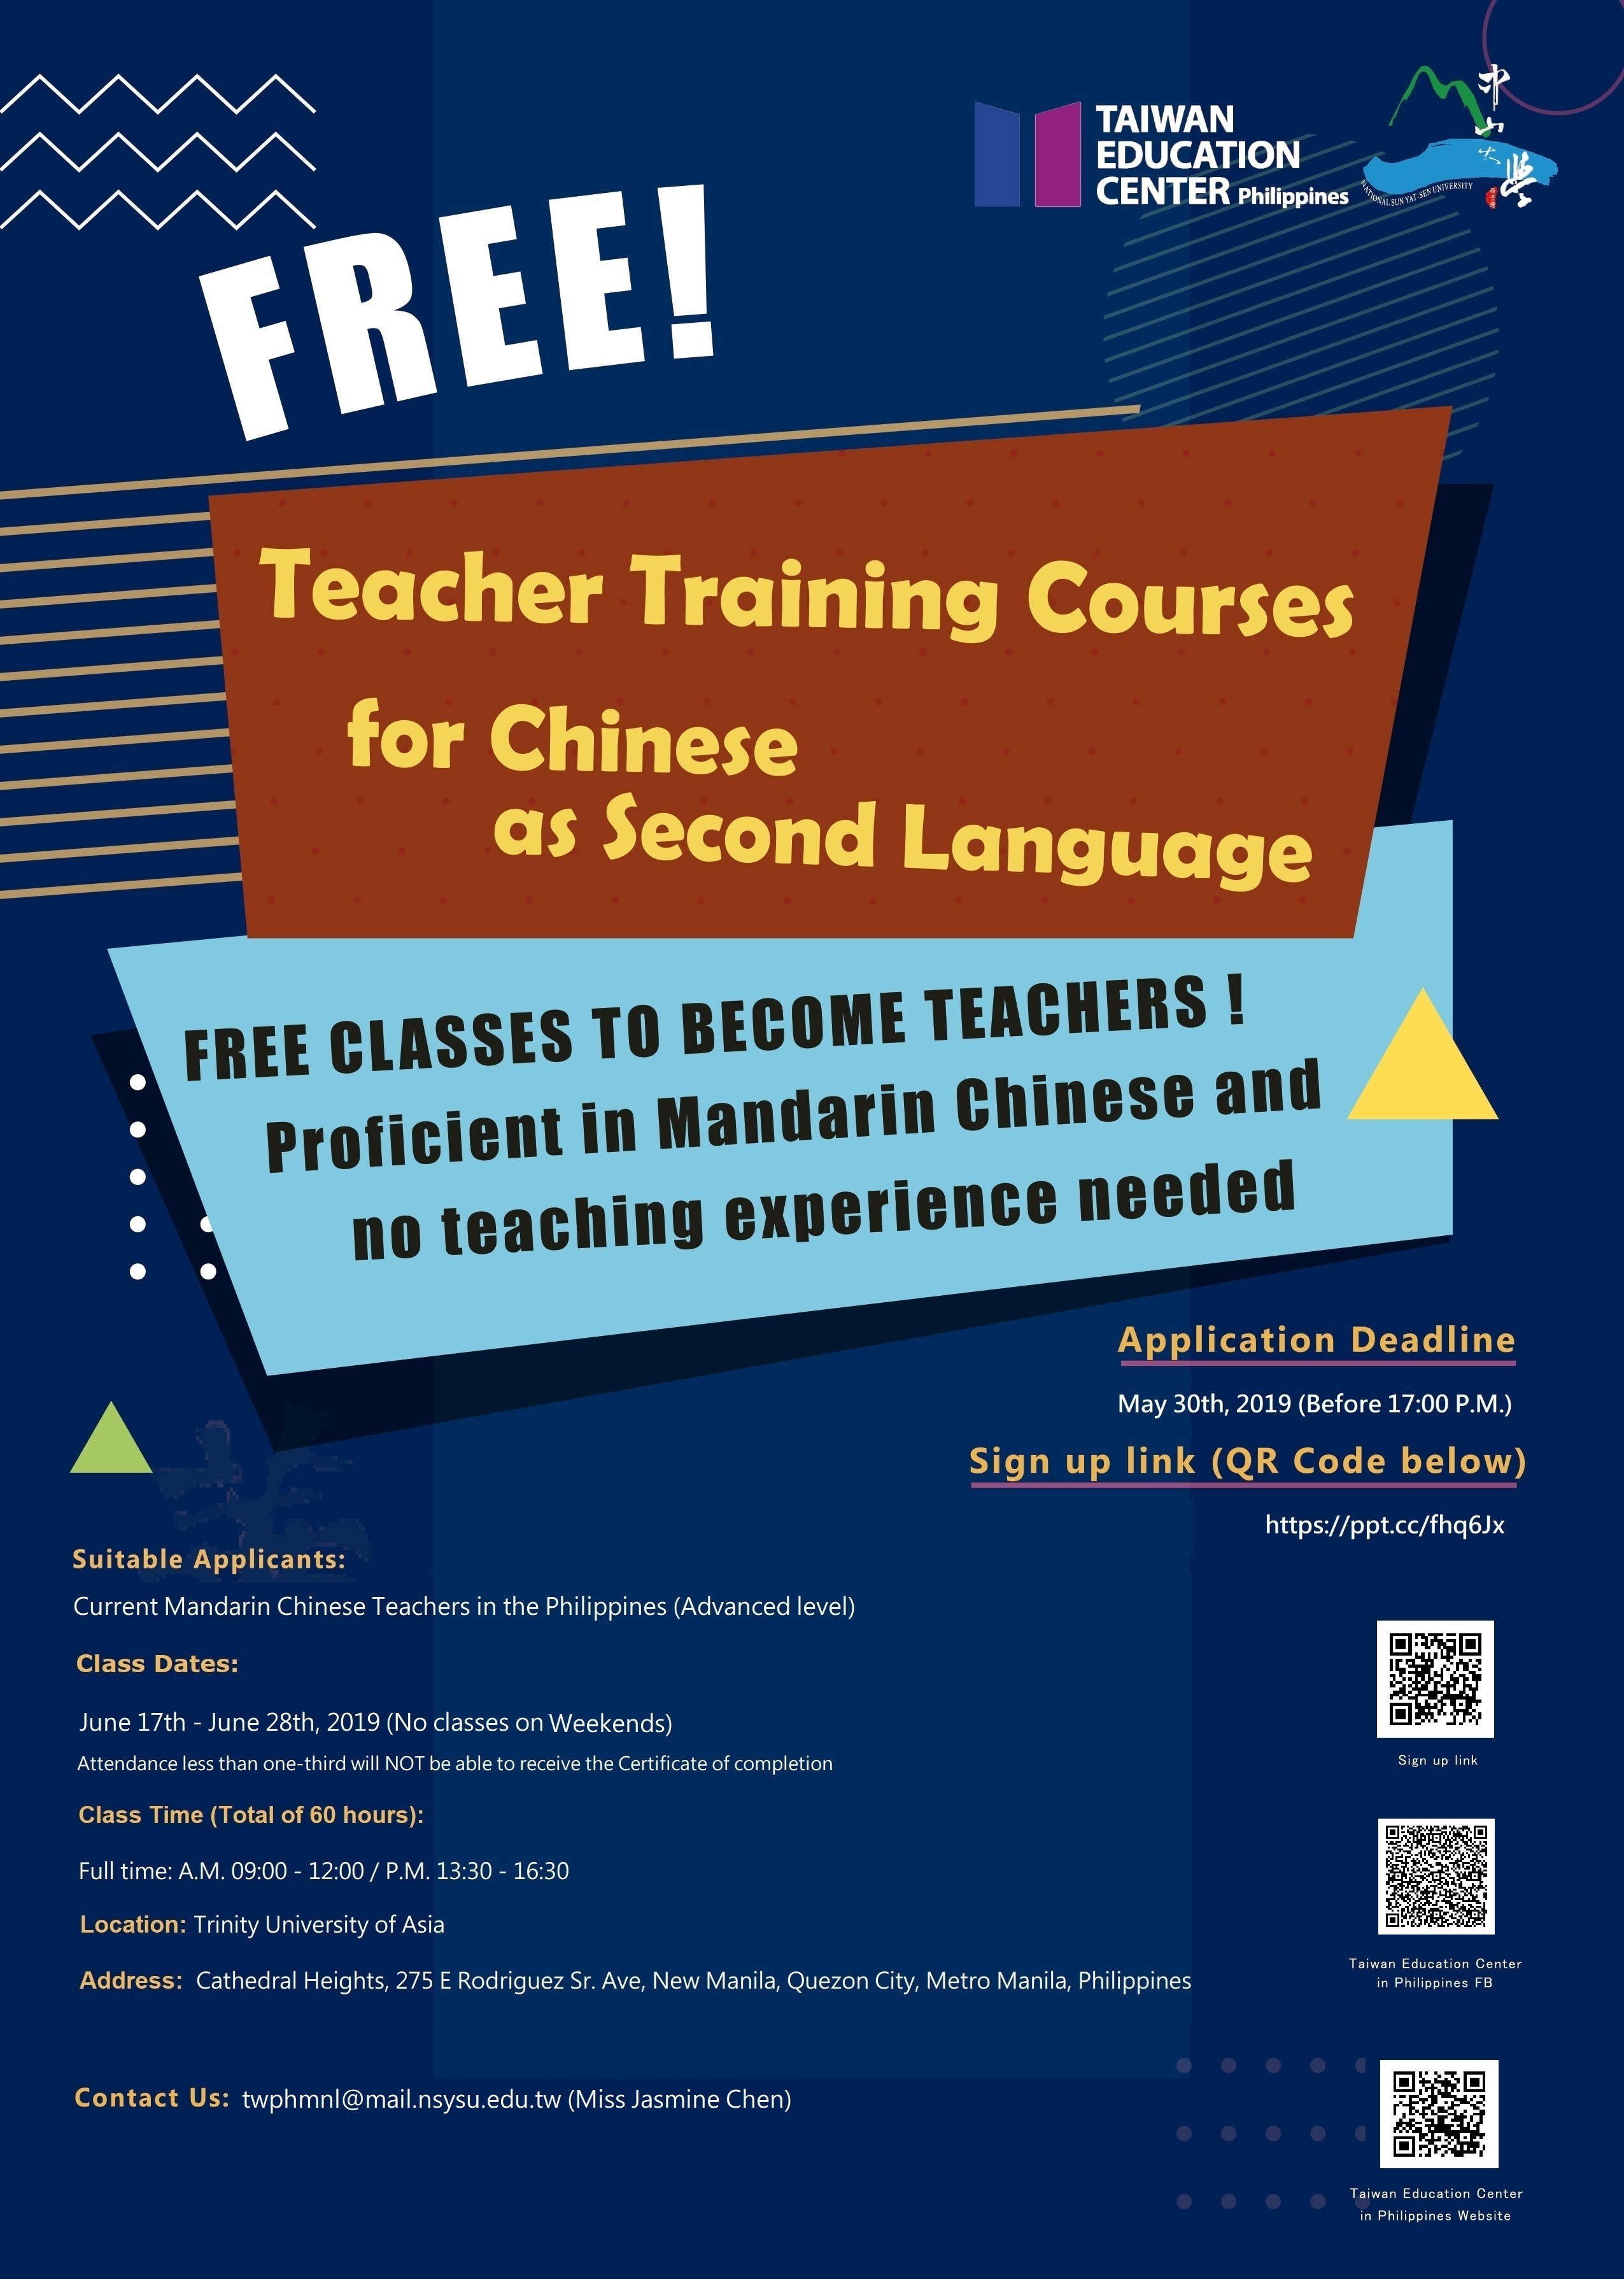 2019 Teacher Training Courses for Chinese as Second Language